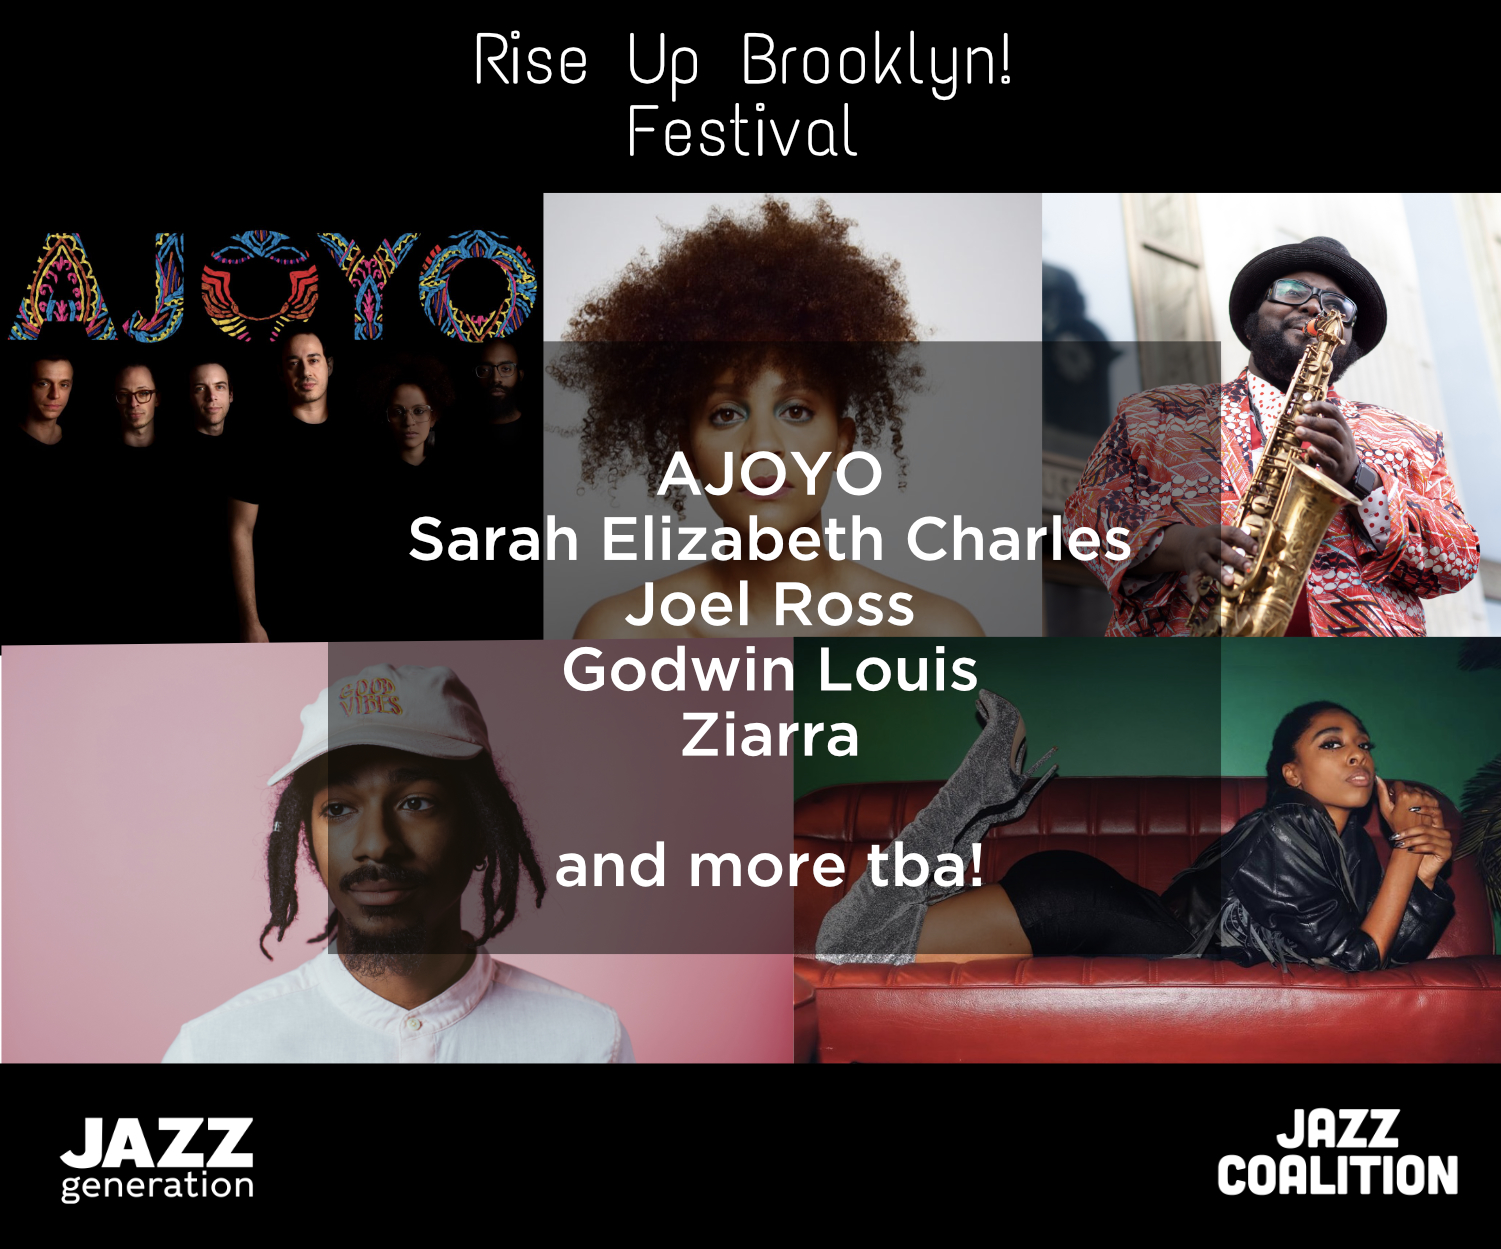 EVENT ANNOUNCEMENT: RISE UP BROOKLYN! Runs July 10 – July 31st